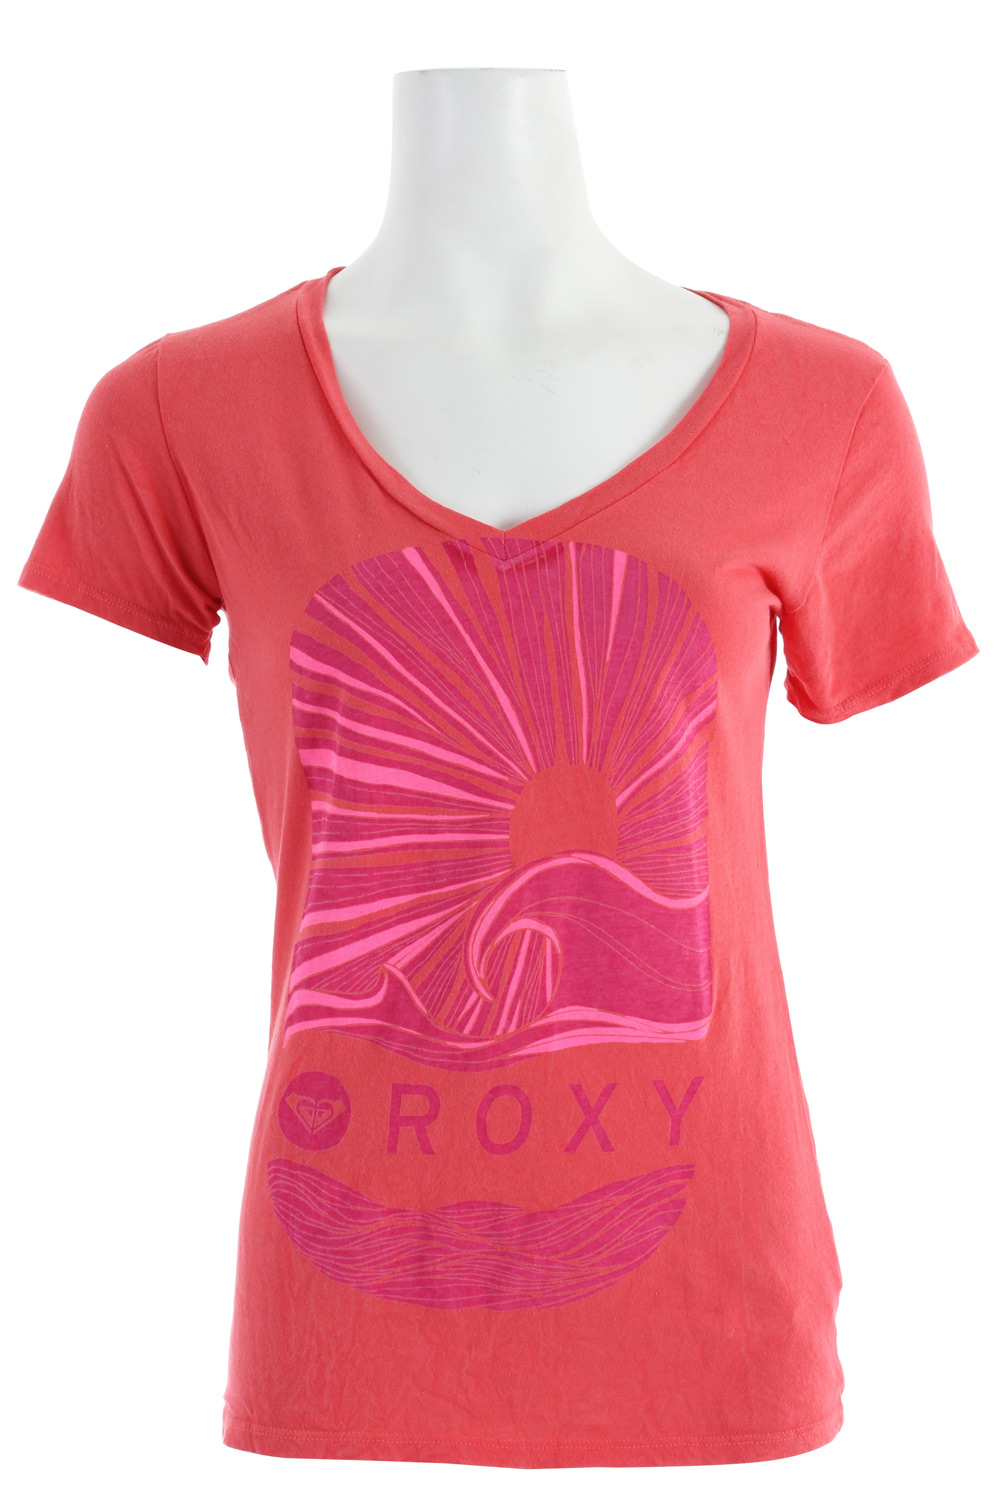 "Surf The Roxy Hello Sunshine Shirt lets you absorb sun rays to your full pleasure.* Regular Fit * V Neck * Short Sleeve * 100% cotton jersey * Vneck tee with discharge * Vintage wash * 26"" hps - $21.95"